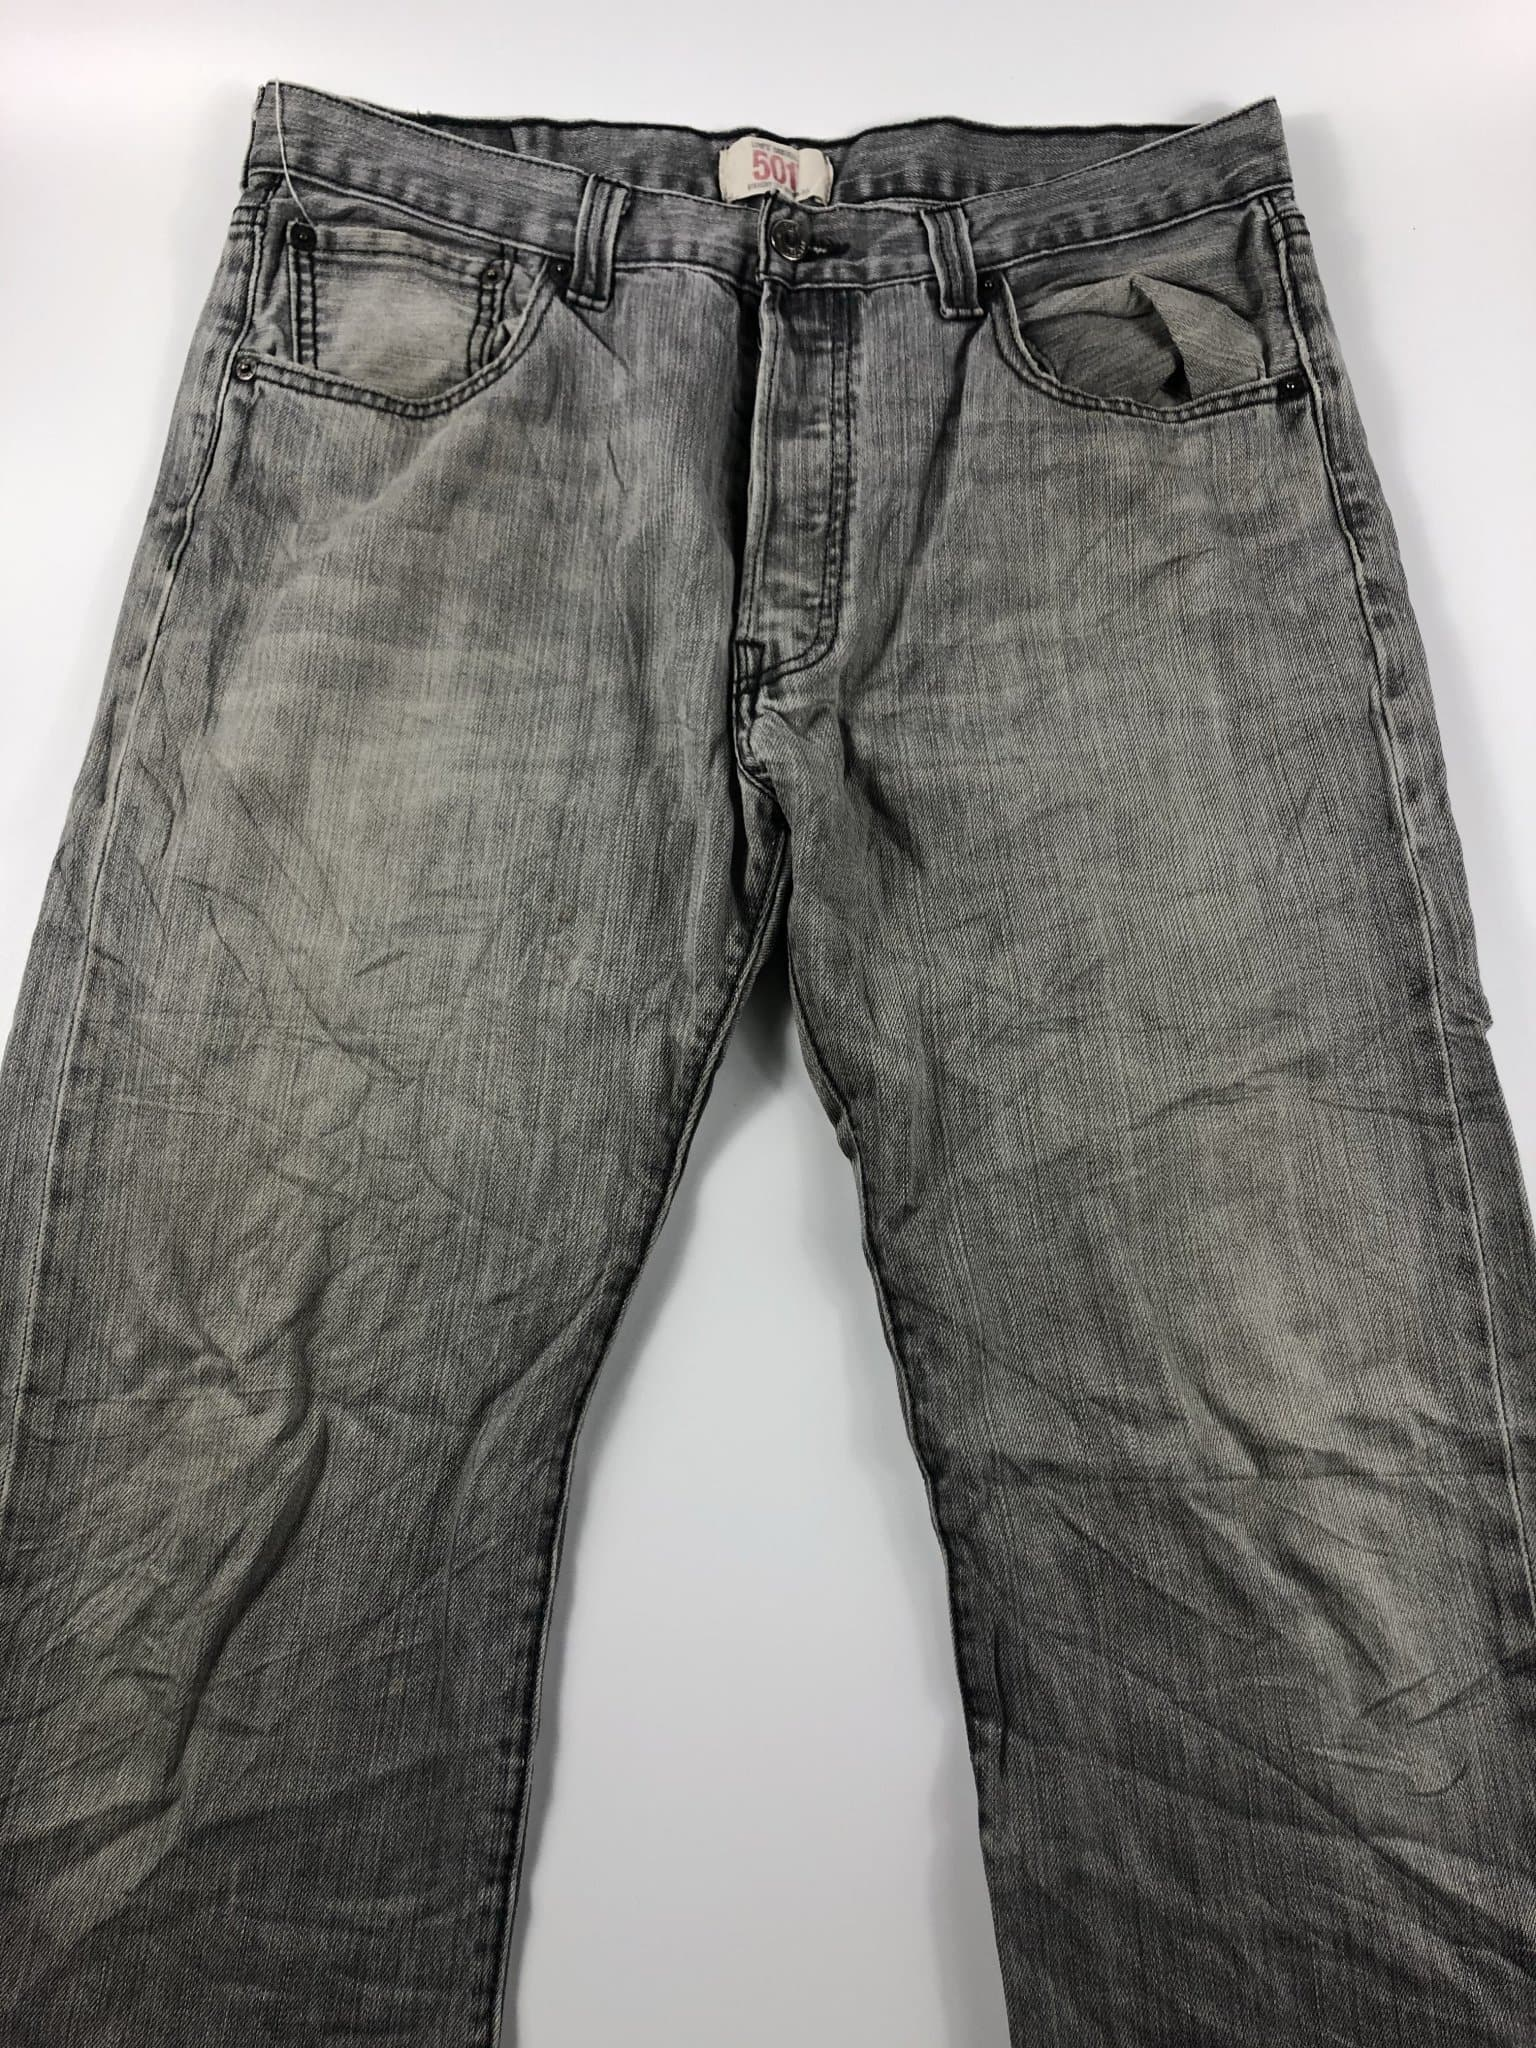 Vintage Levi's Classic 501 Jeans W34 L32 (I11) - Discounted Deals UK